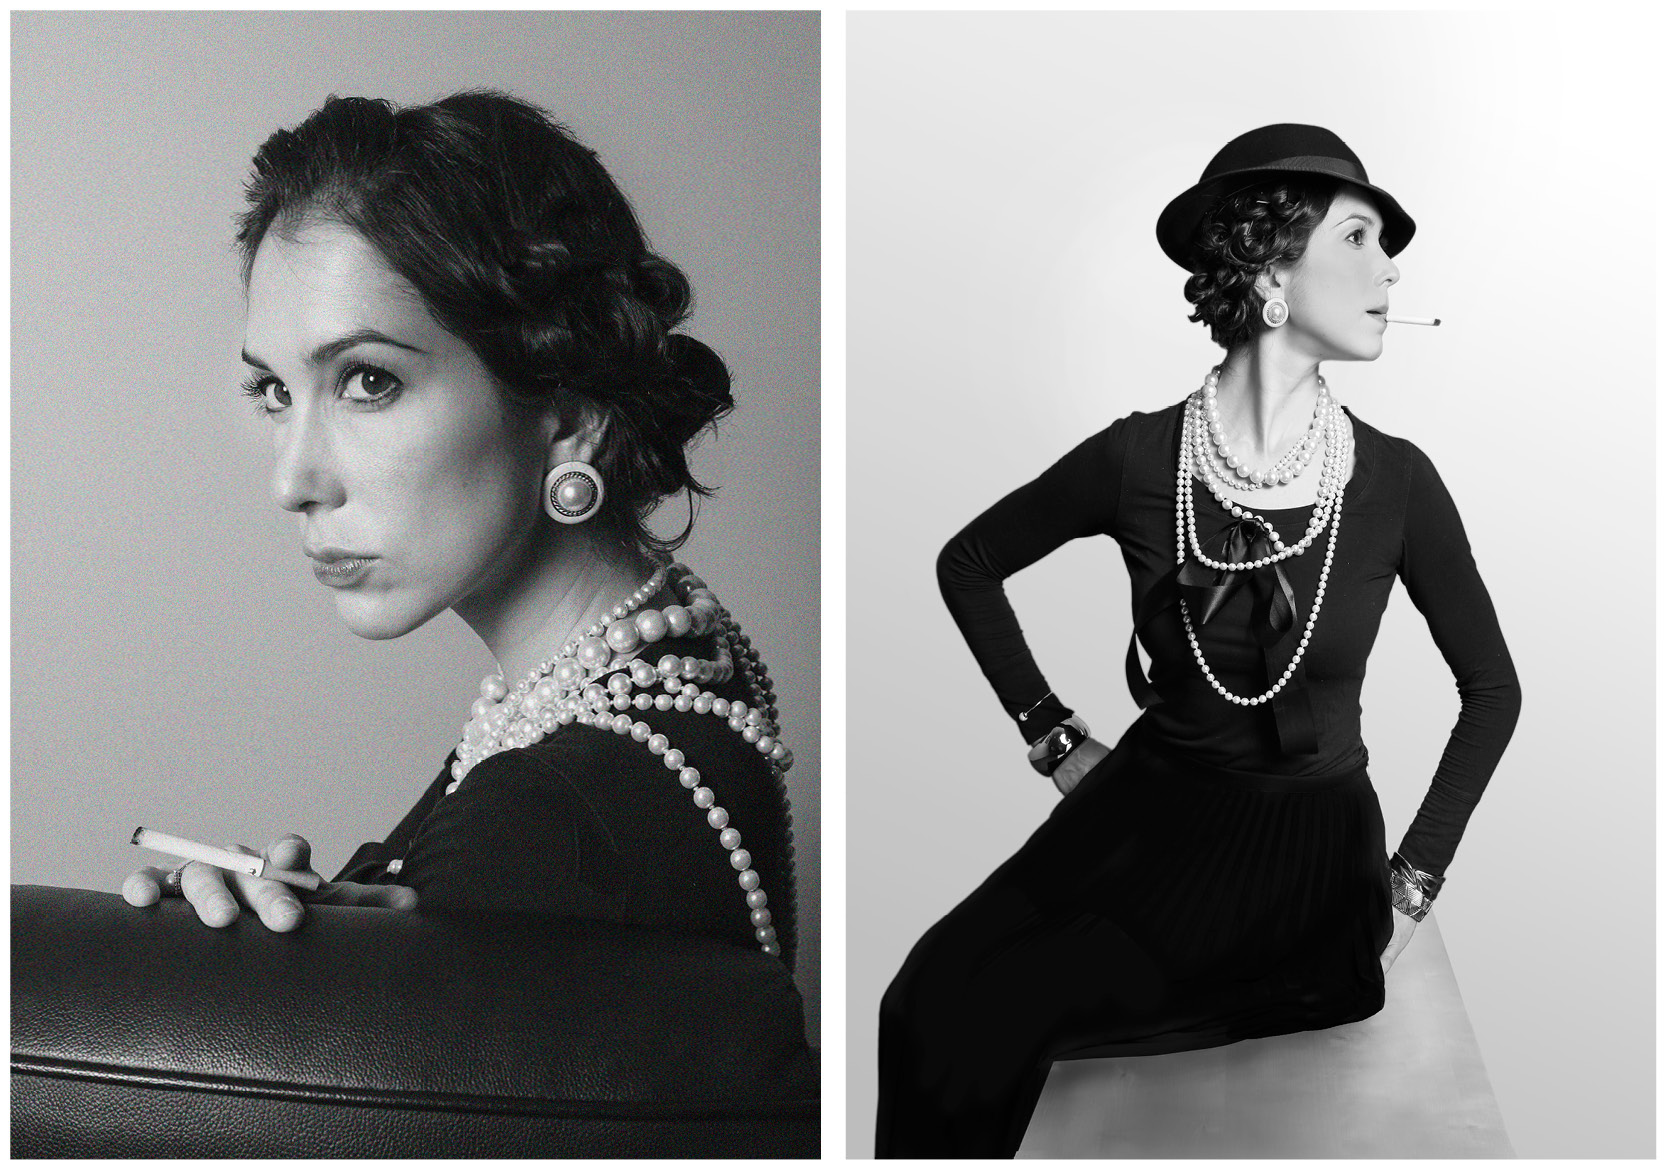 Photo replicas of Coco Chanel